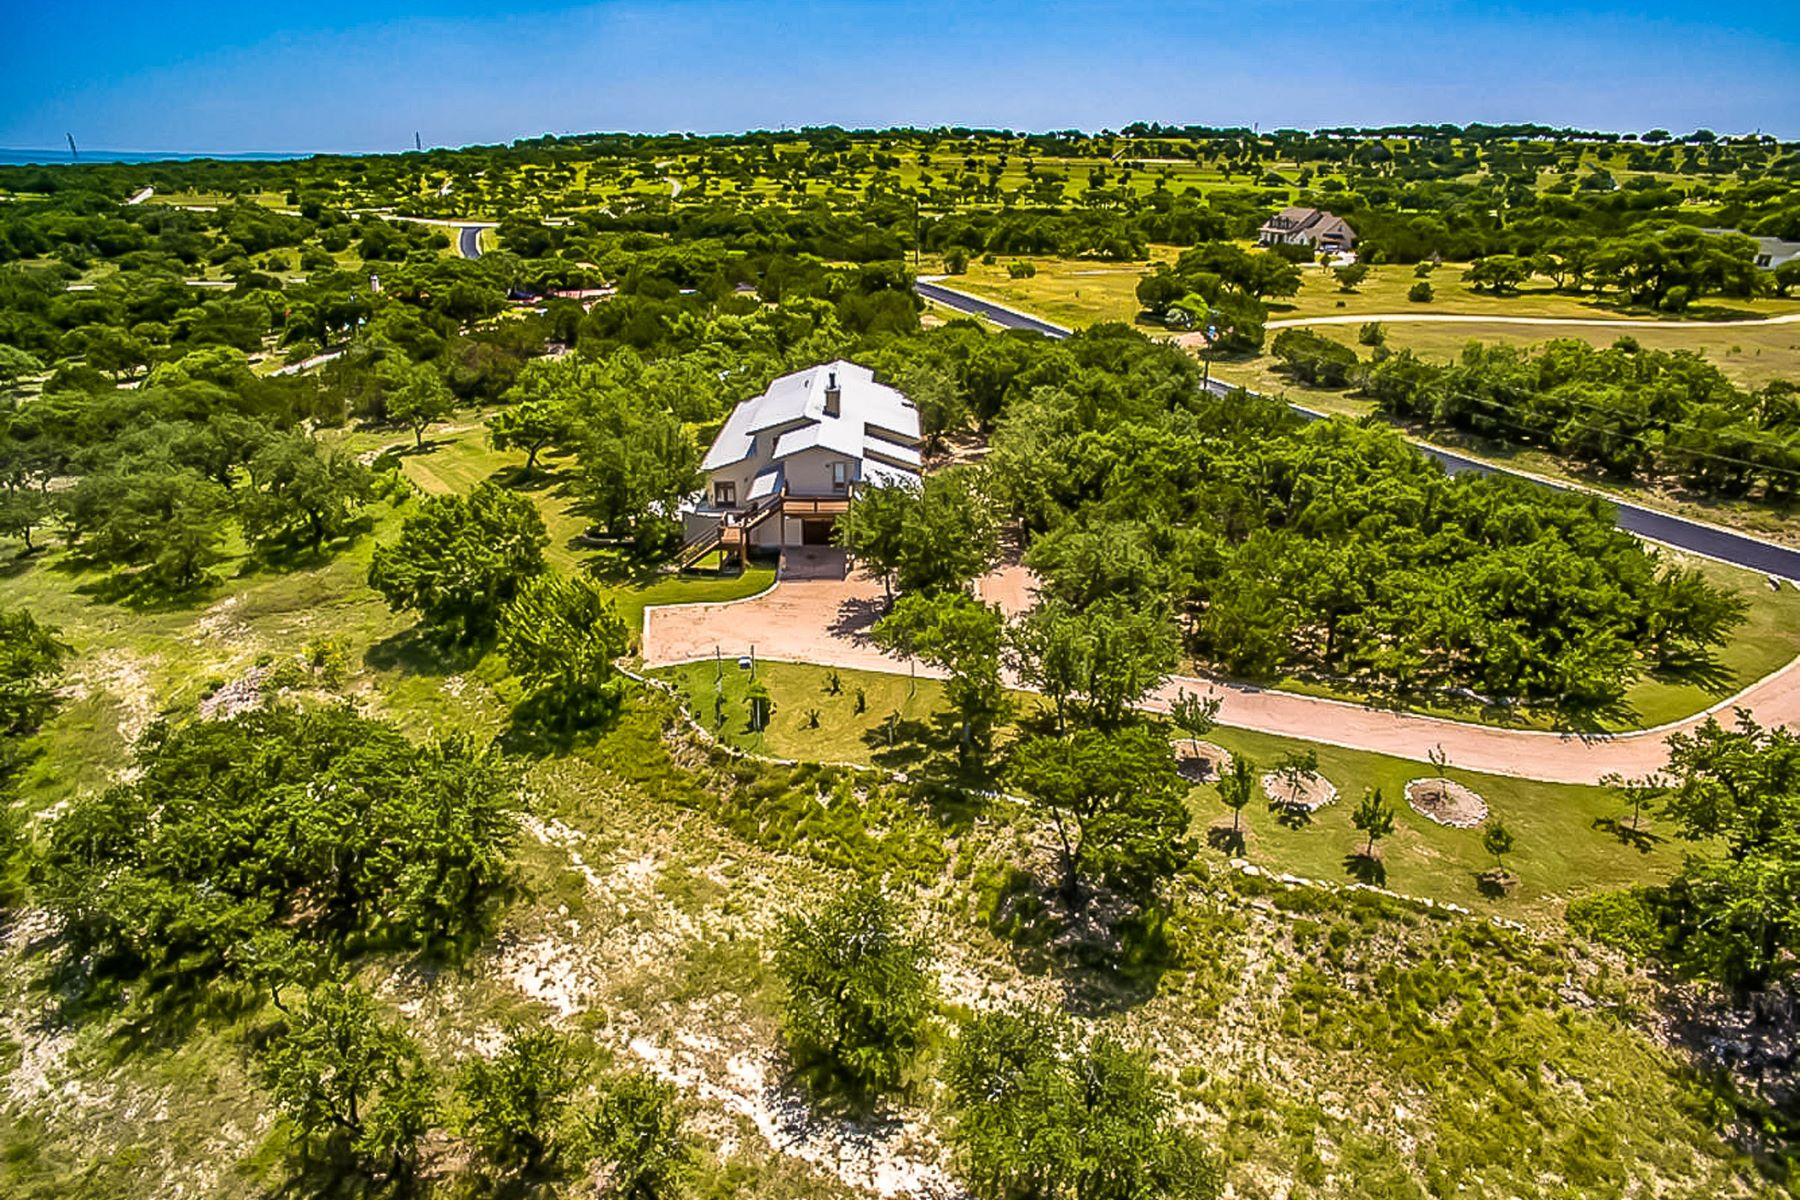 Single Family Home for Sale at Panoramic Views to the Hill Country 140 Granite Ridge Dr Spicewood, Texas, 78669 United States